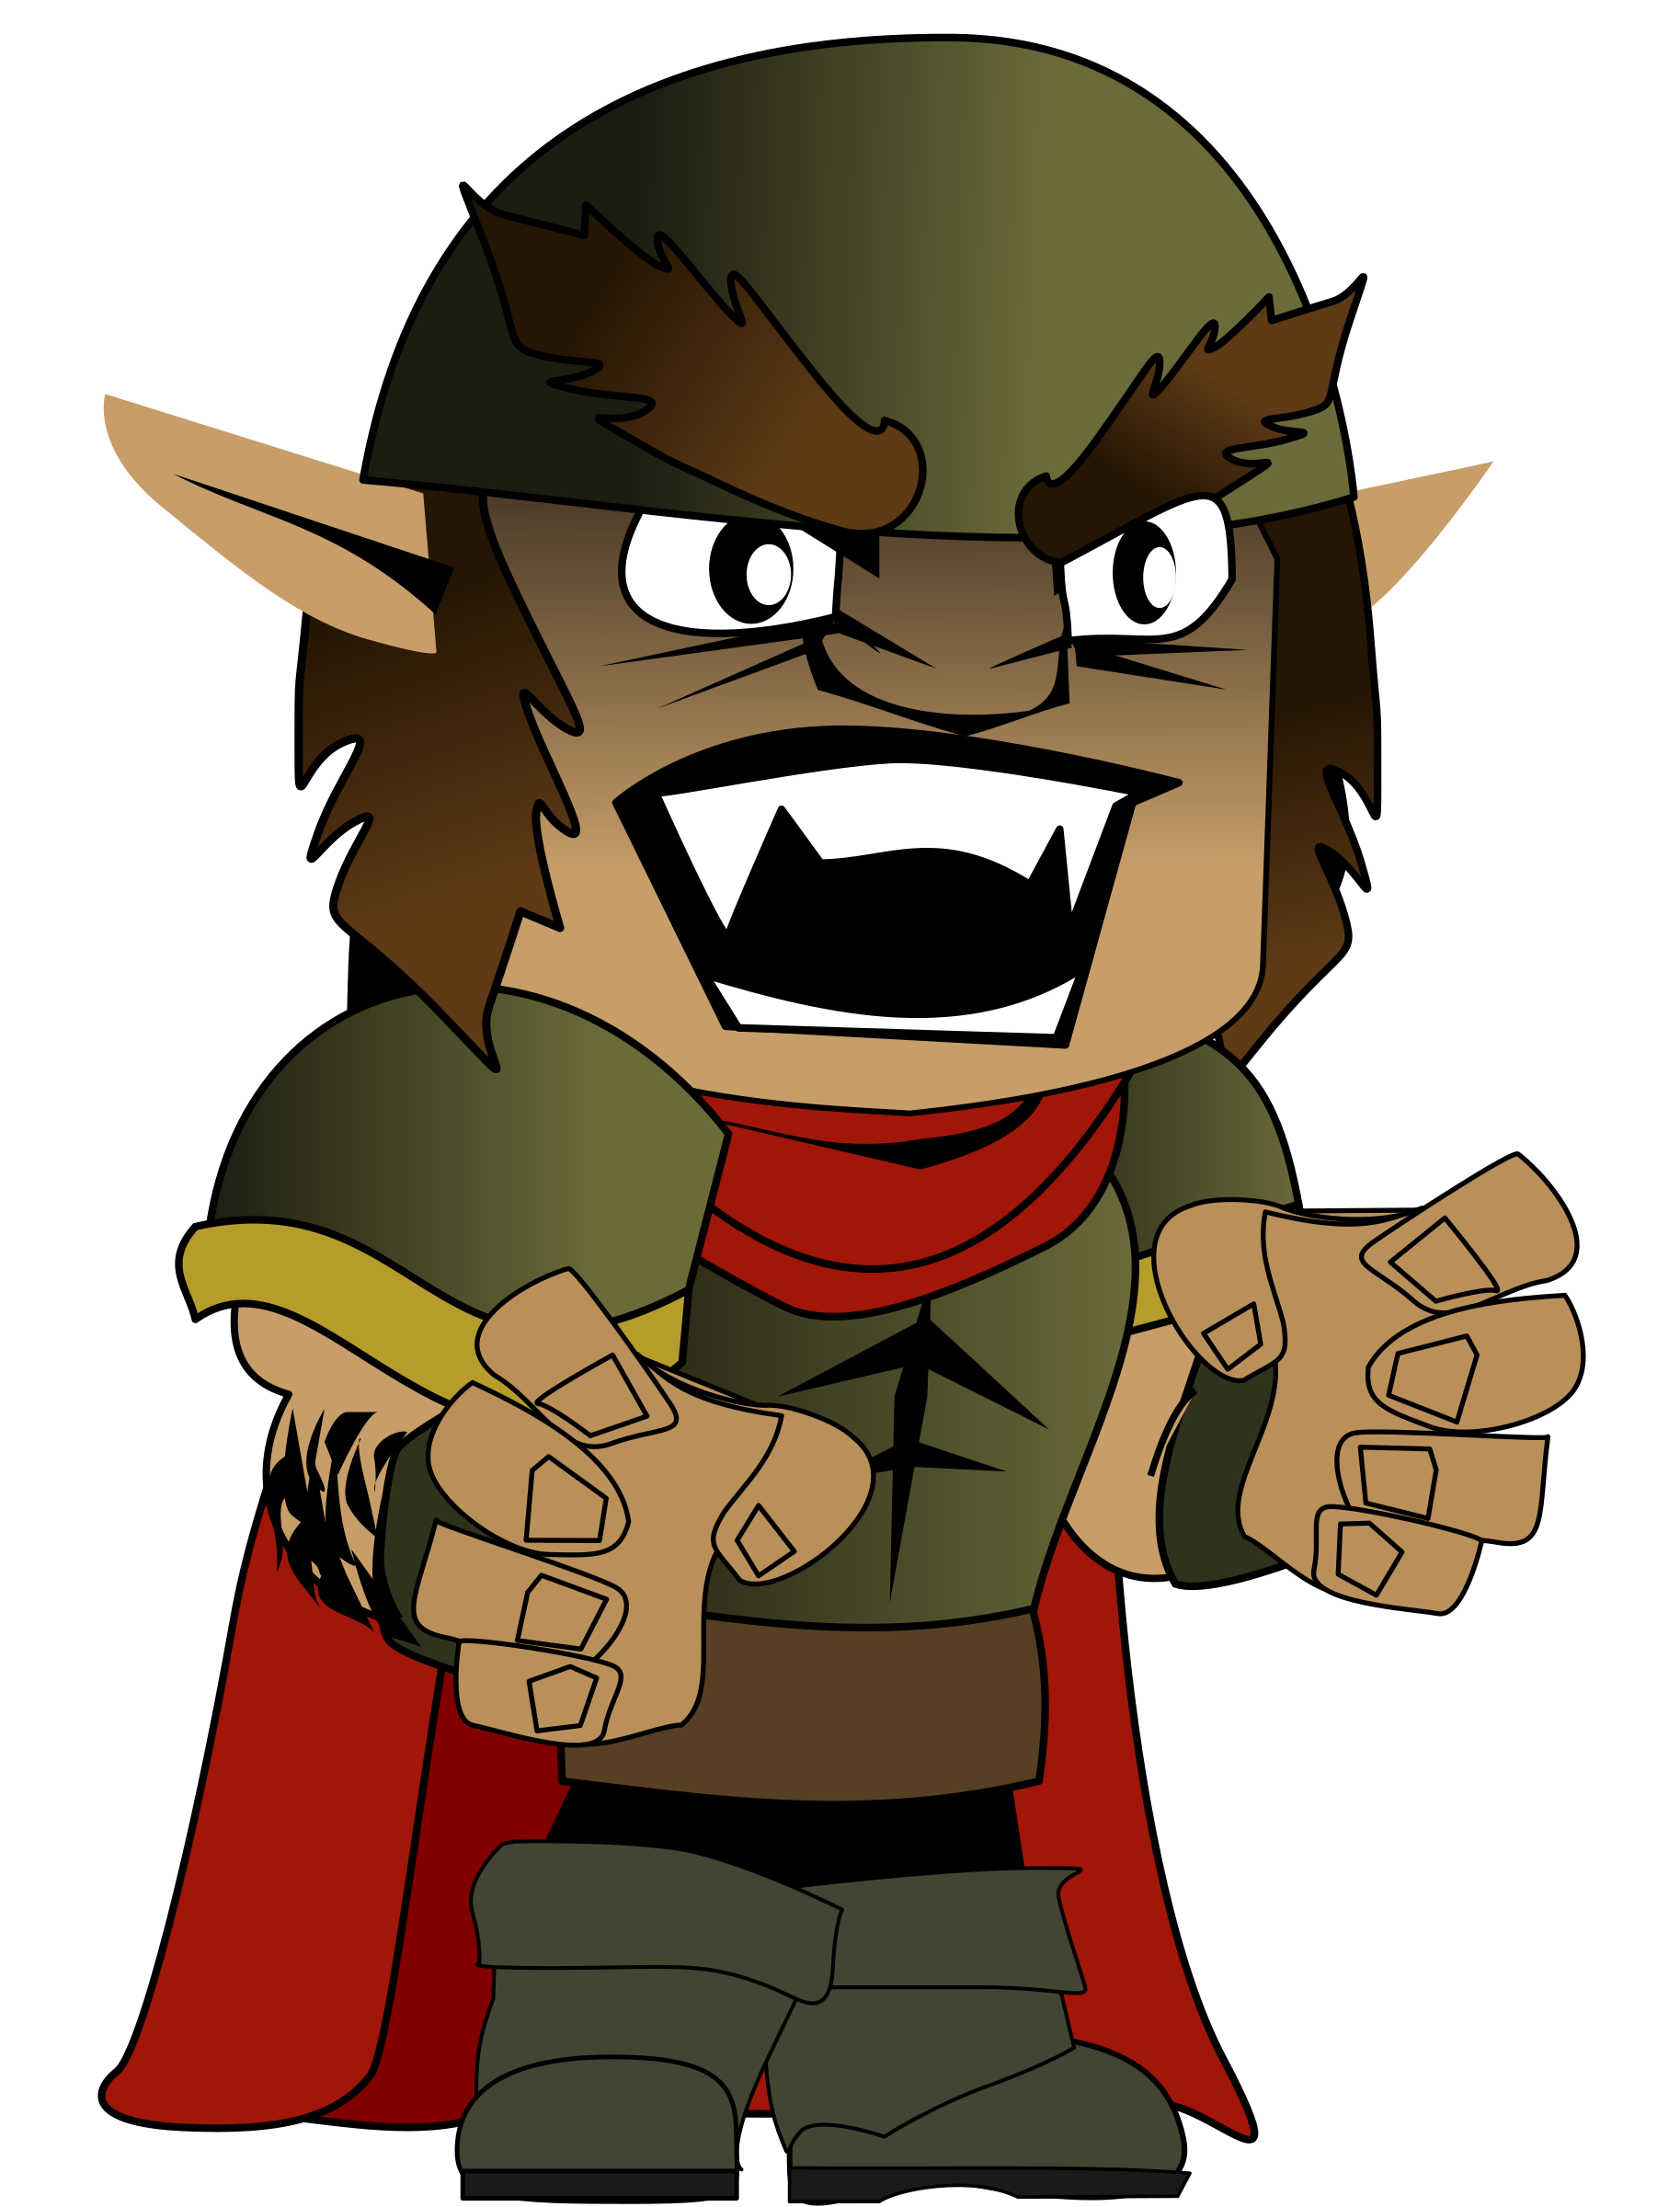 Orc chibi by Peileppe